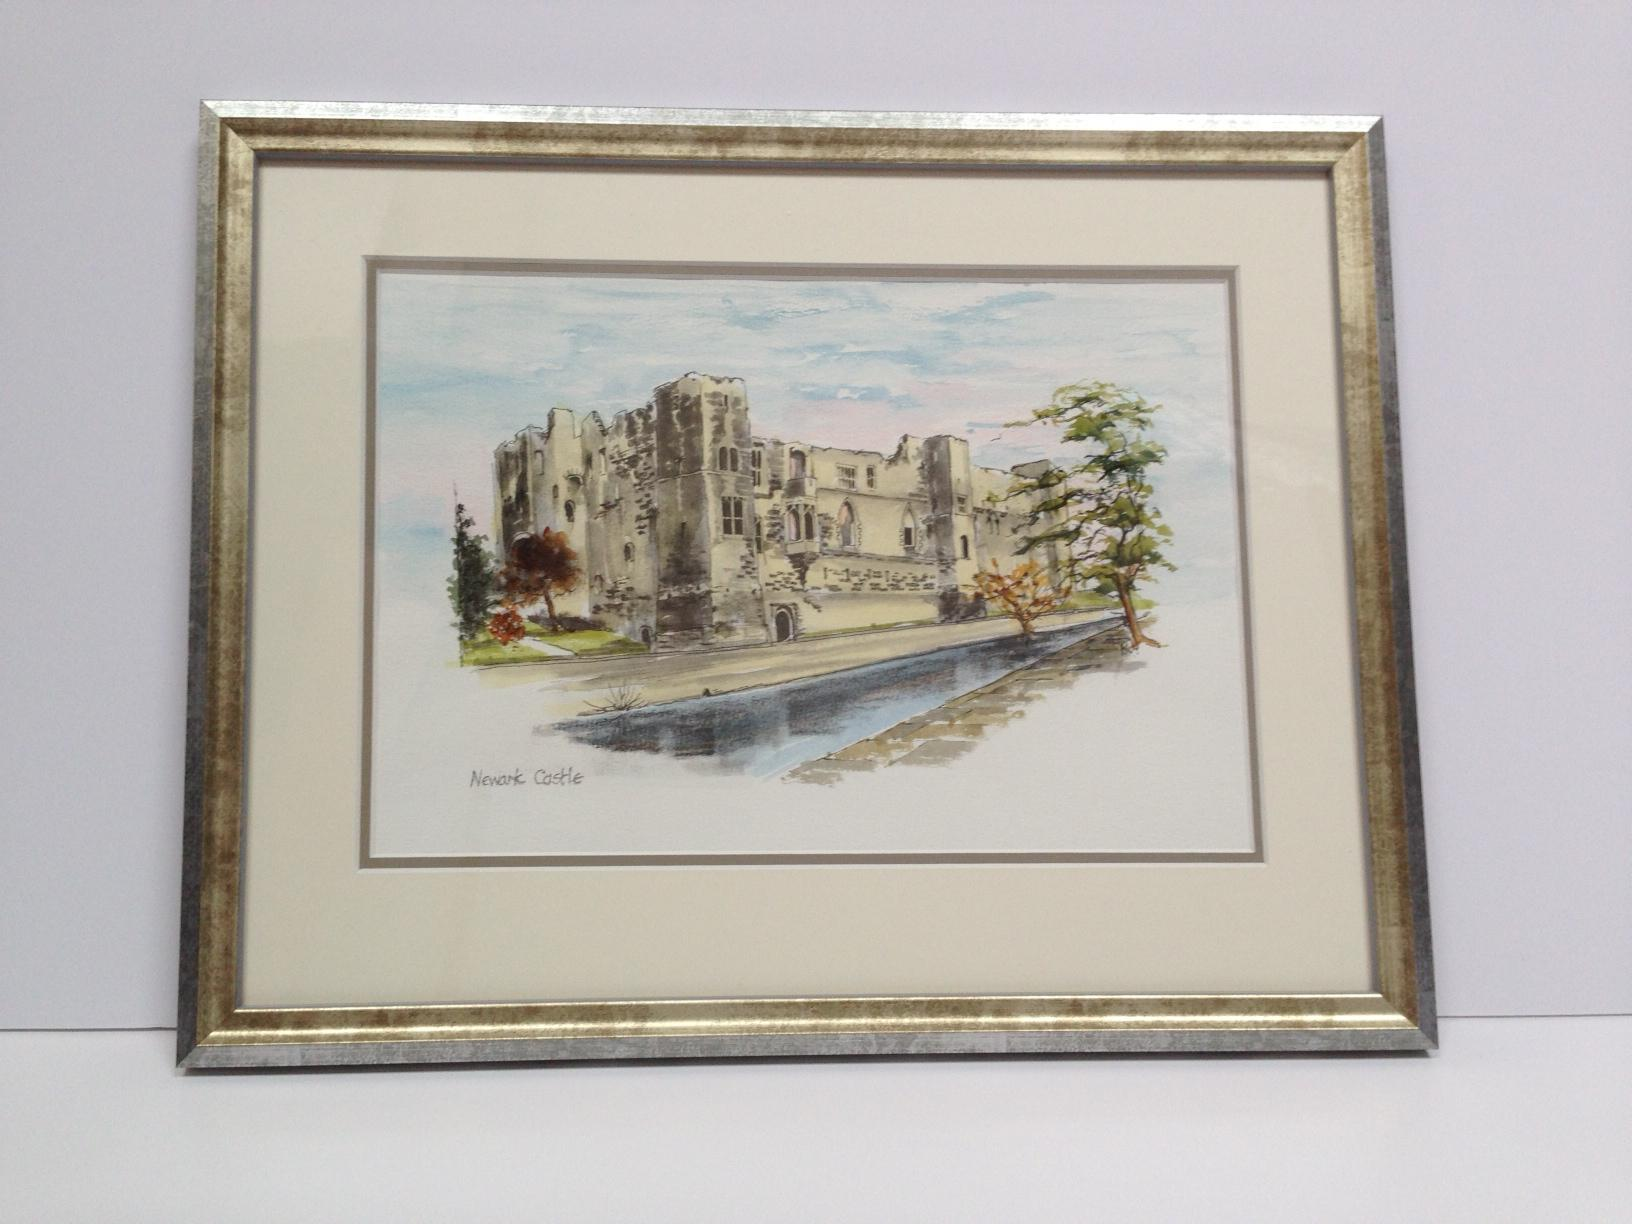 Newark Castle double mounted and framed